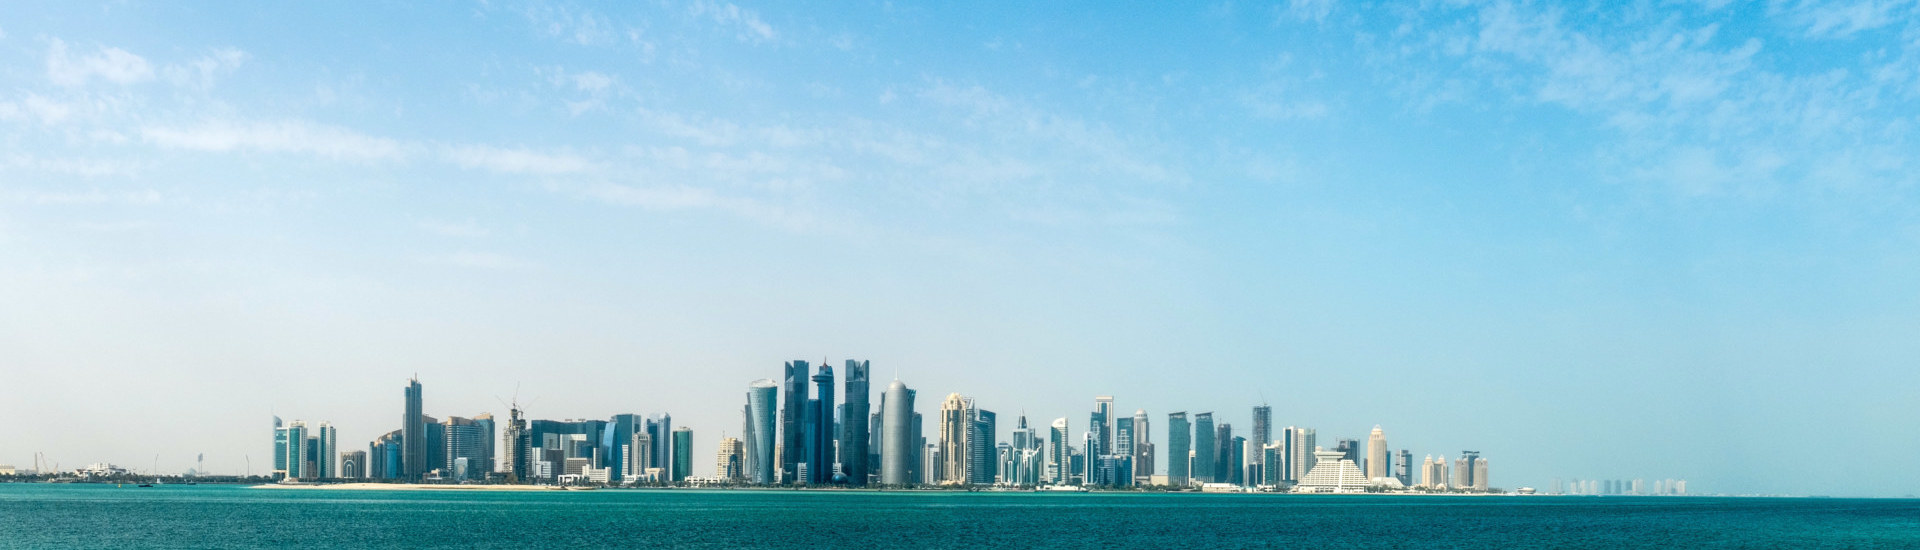 skyline-of-doha-qatar